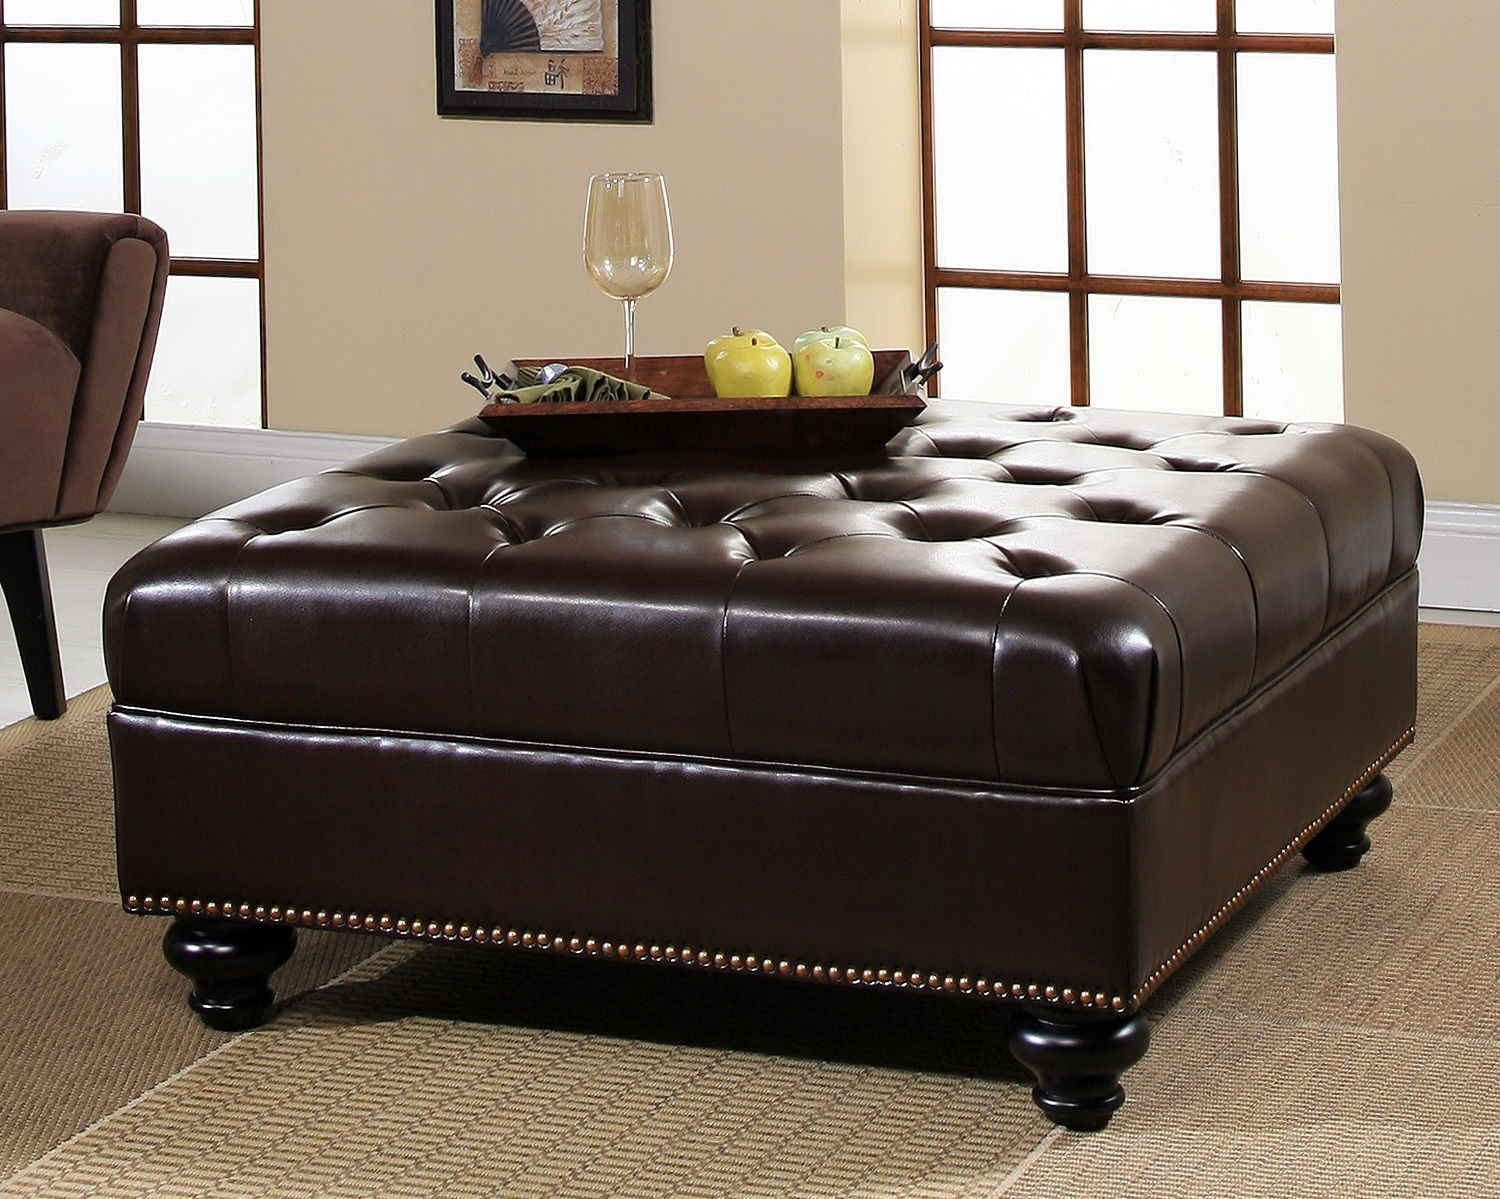 Ottoman Coffee Table Storage | Extra Large Ottoman | Storage Ottoman for Sale